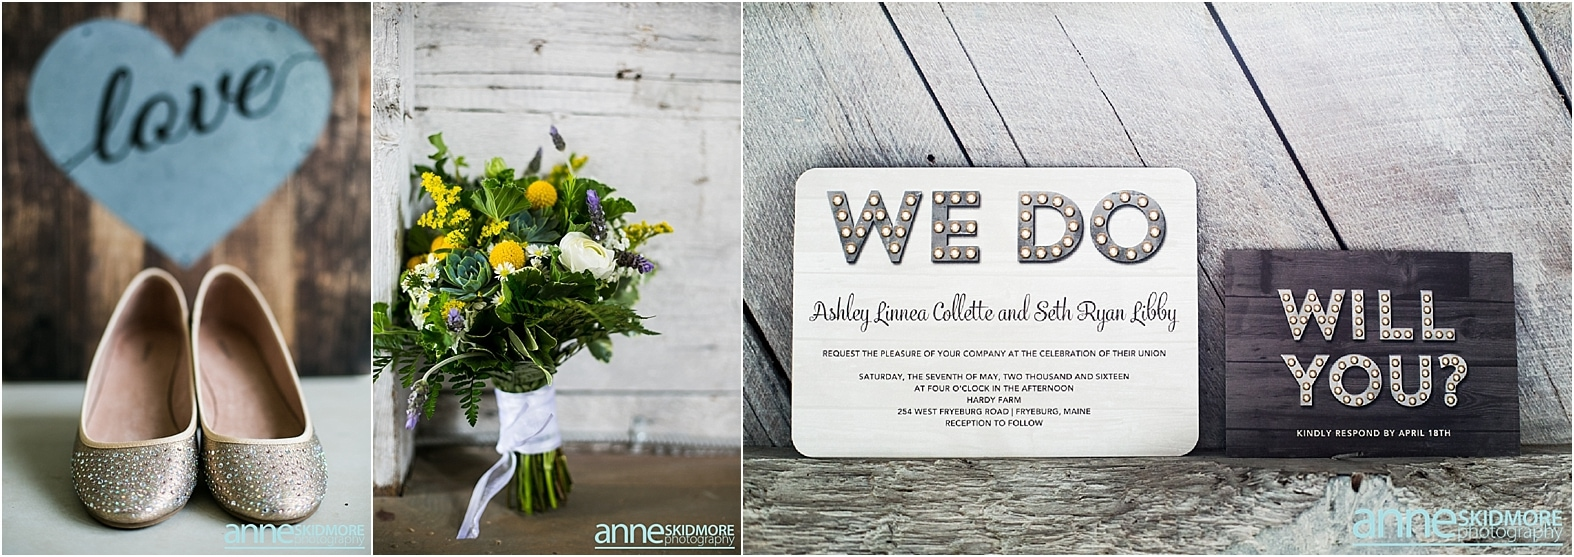 Hardy_Farm_Wedding_0008